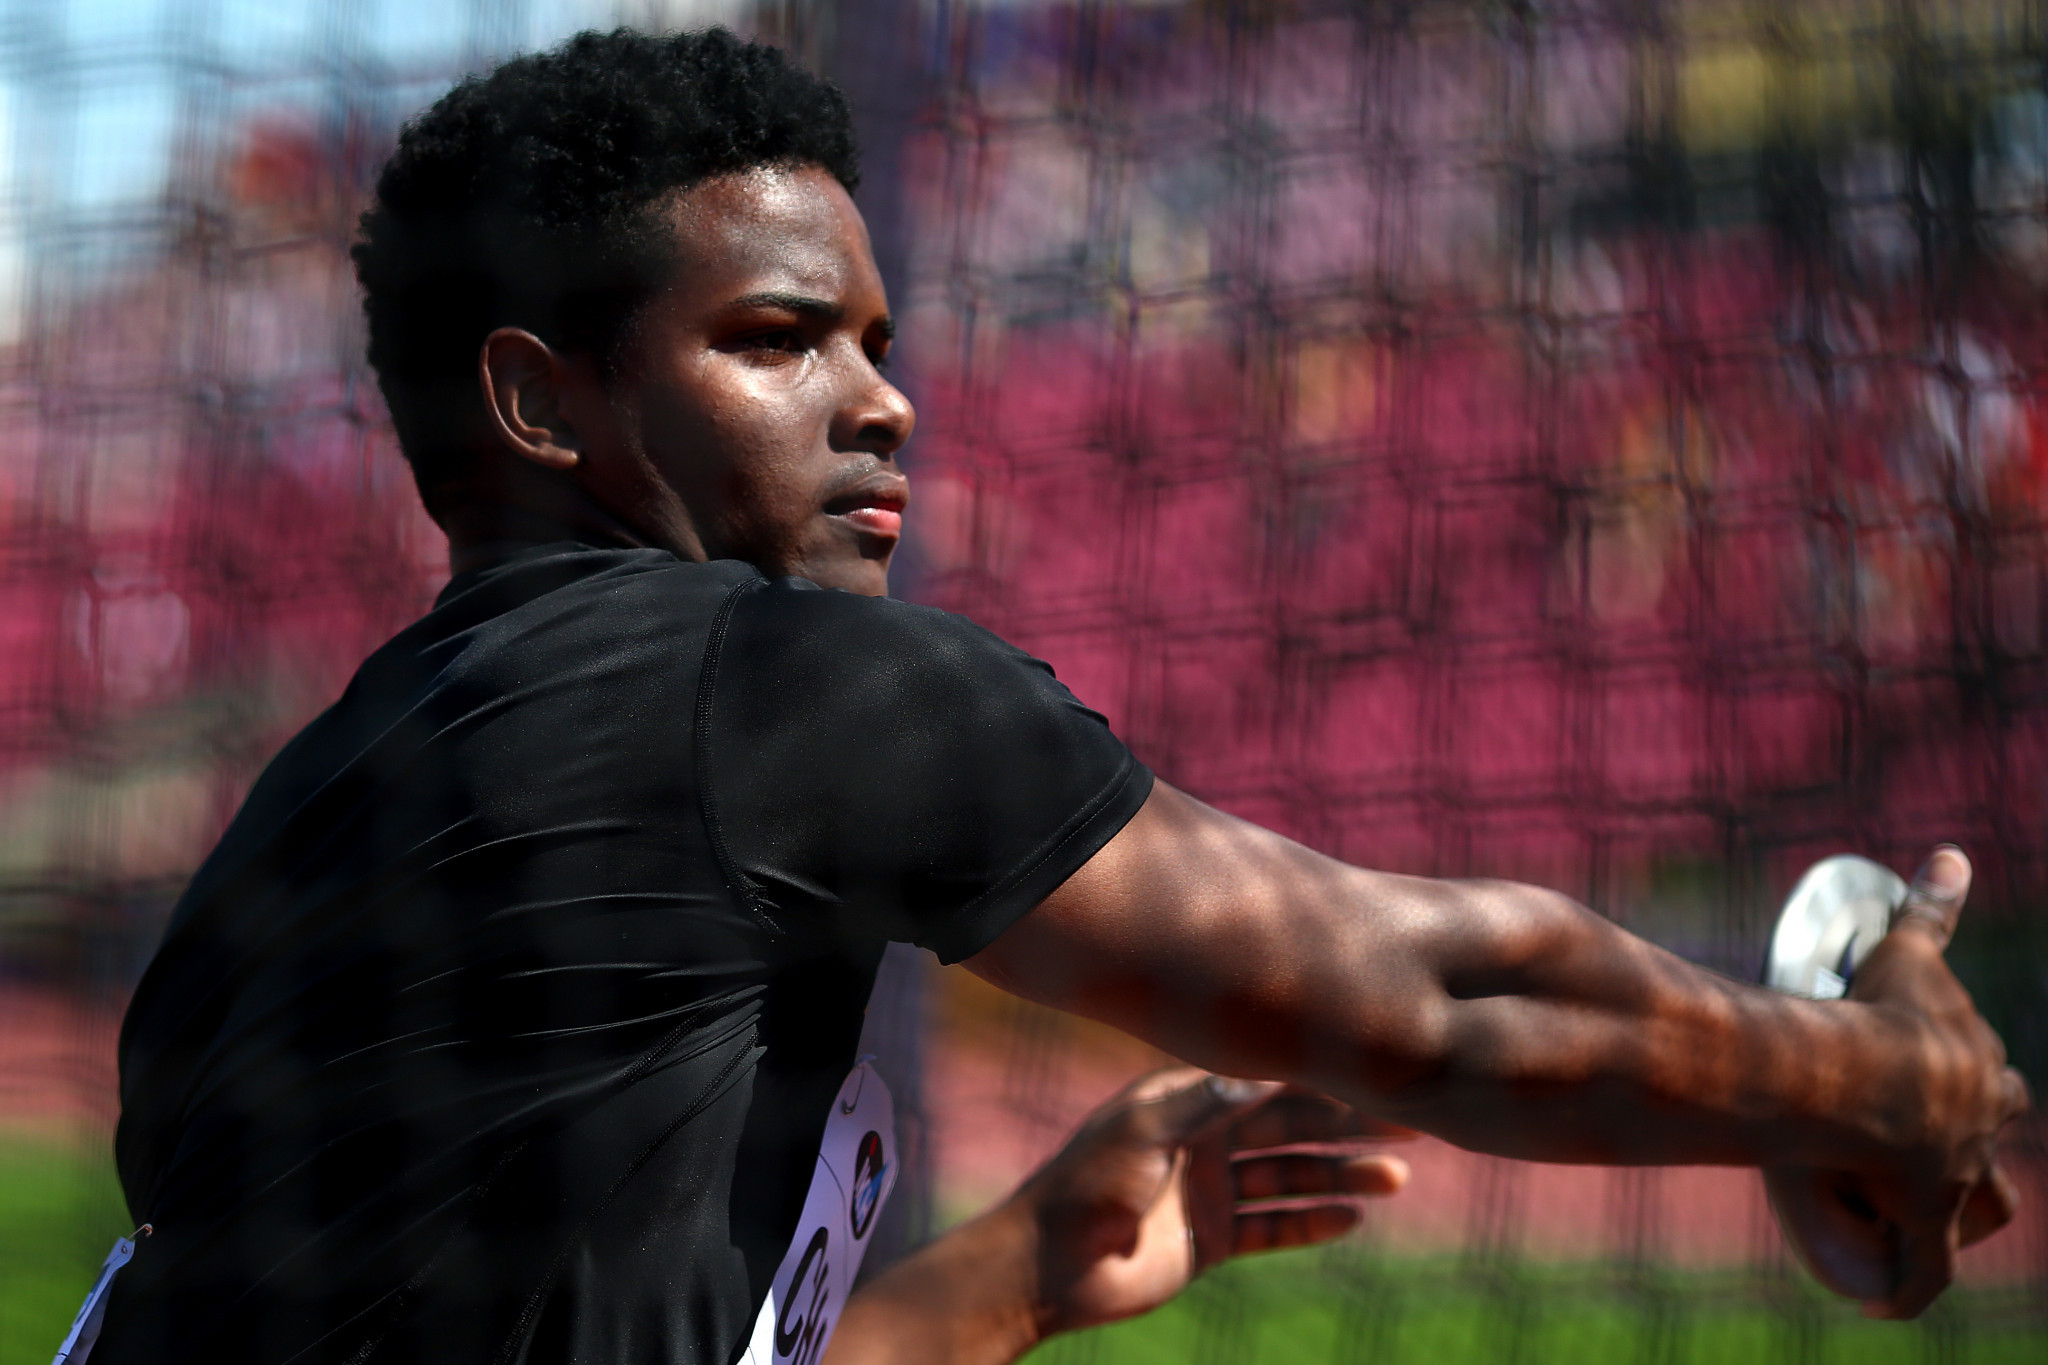 Jamaican Kai Chang showed why he is the reigning world under-20 discus champion as he threw 59.36 metres ©Getty Images